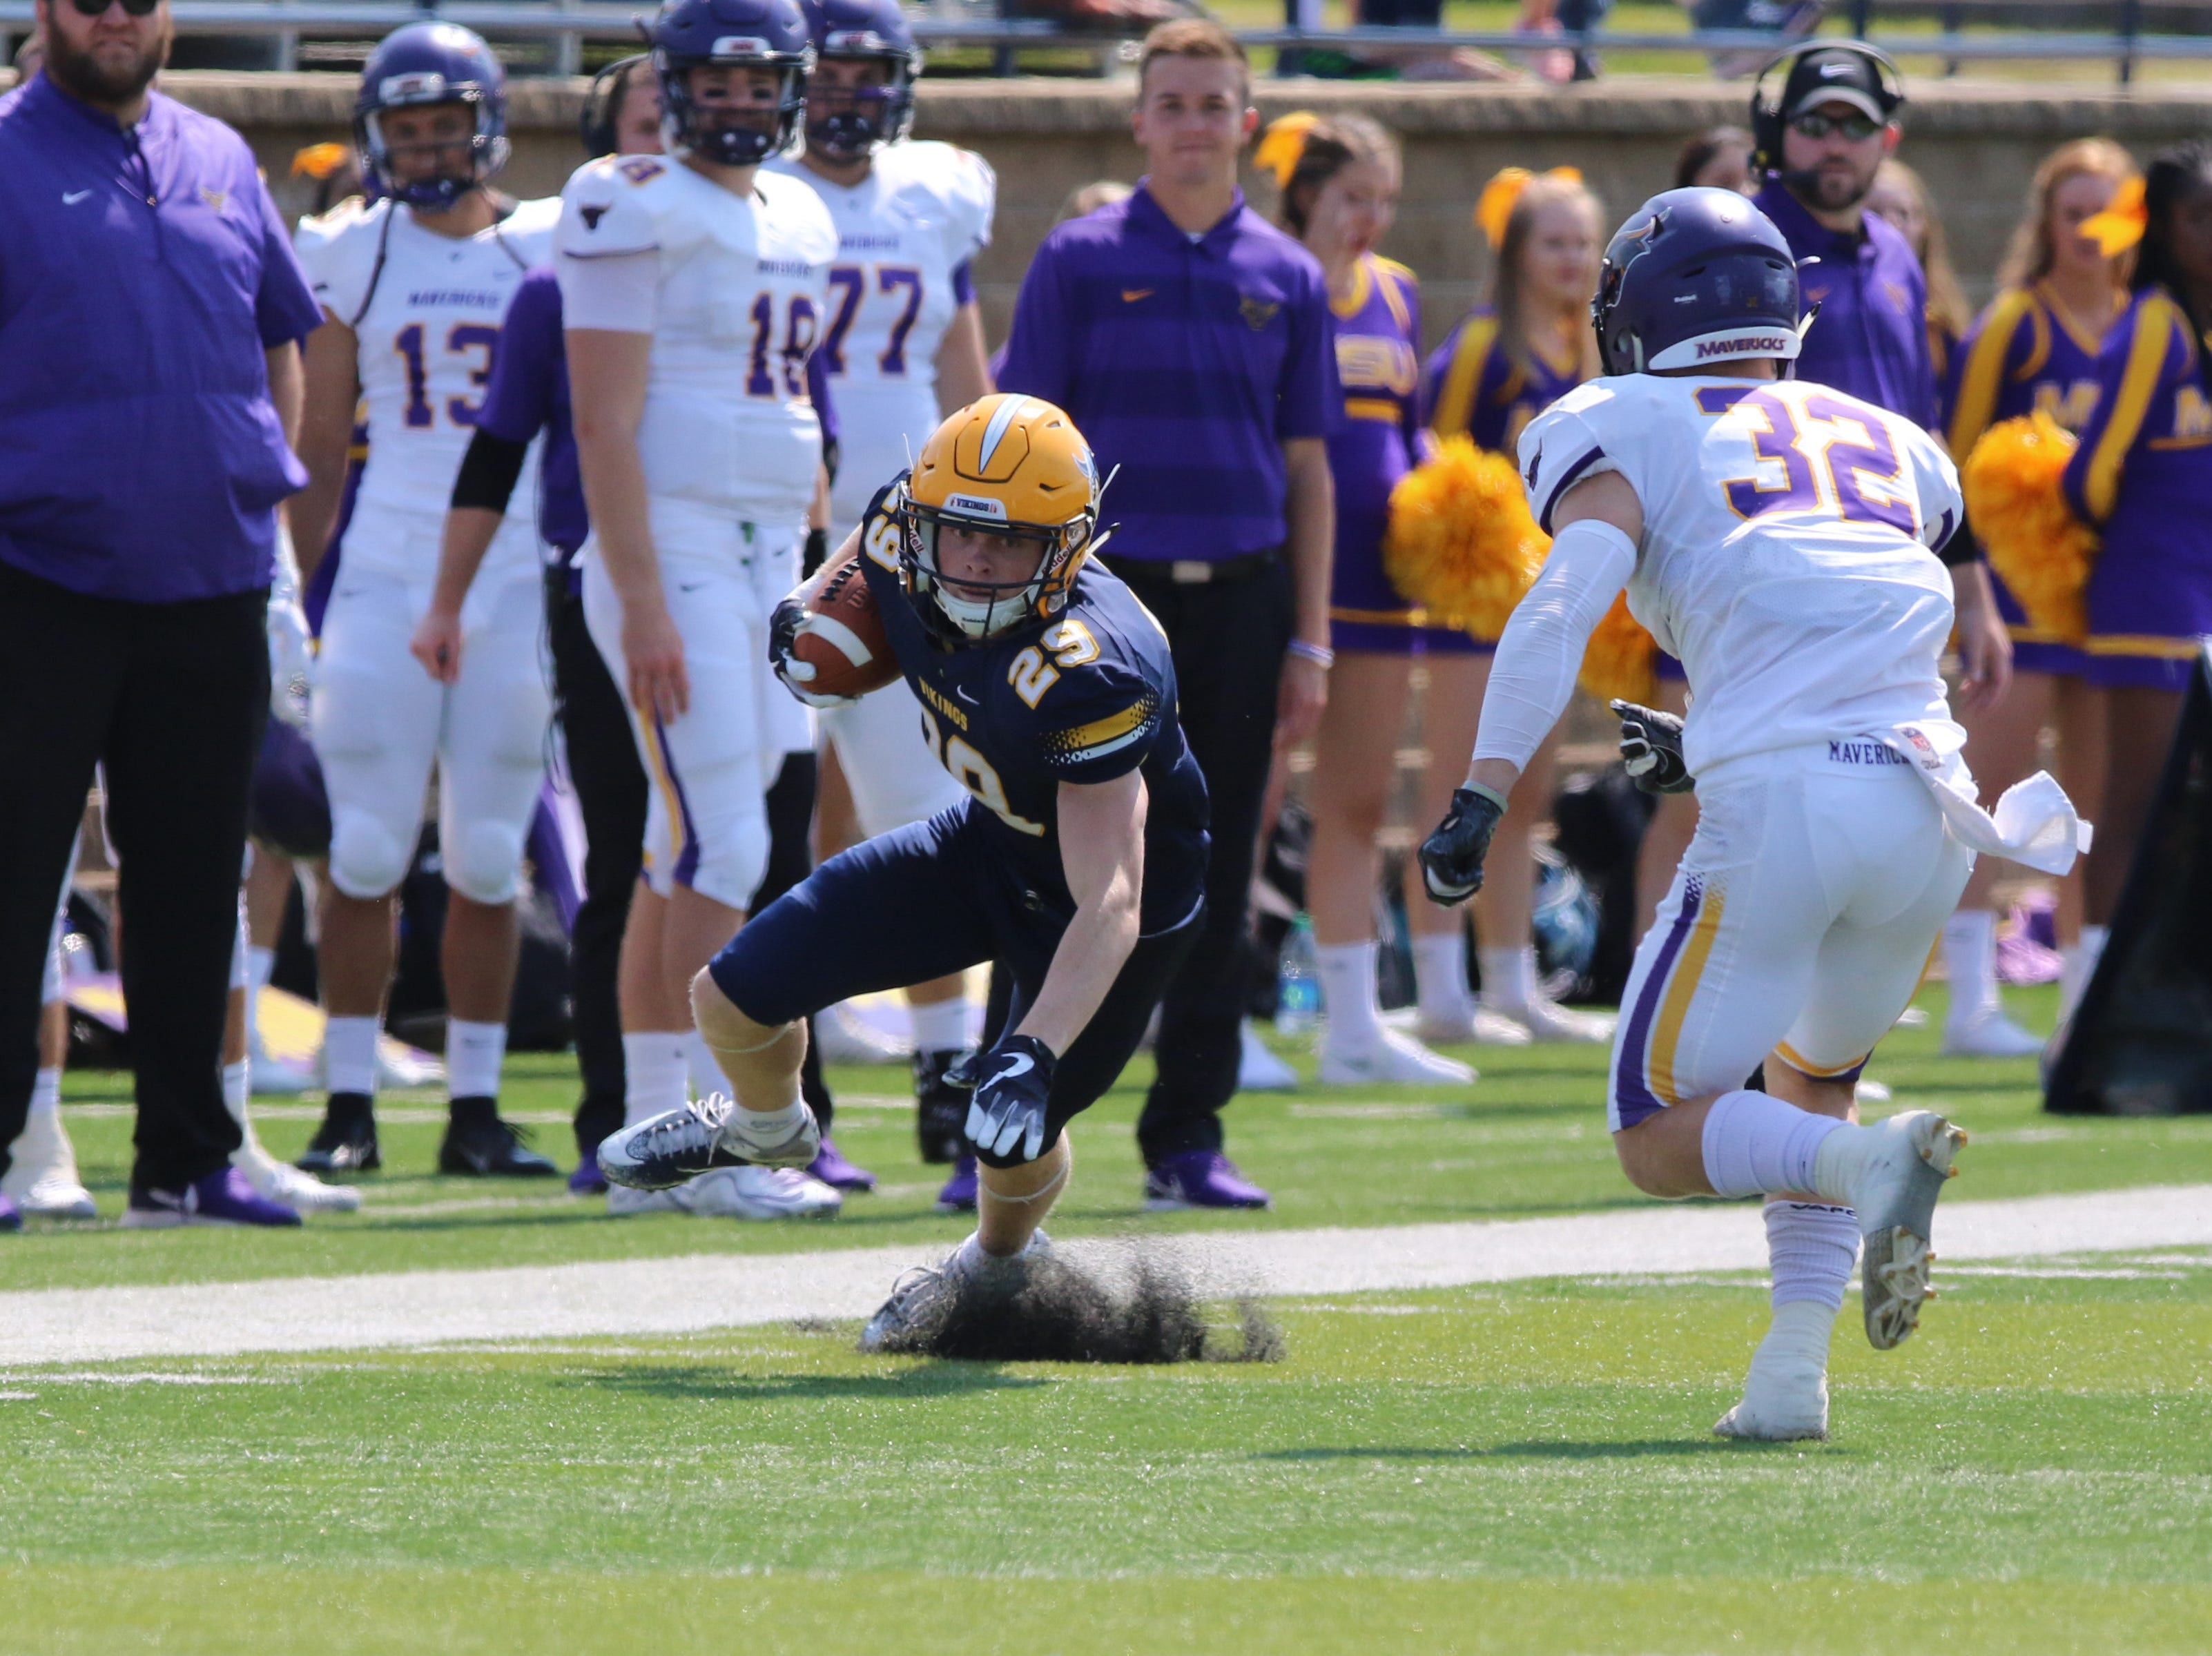 Augustana's Fr RB Braiden Petersen catches a pass from QB Kyle Saddler and turns to elude a defender during their game against Minnesota State-Mankato.